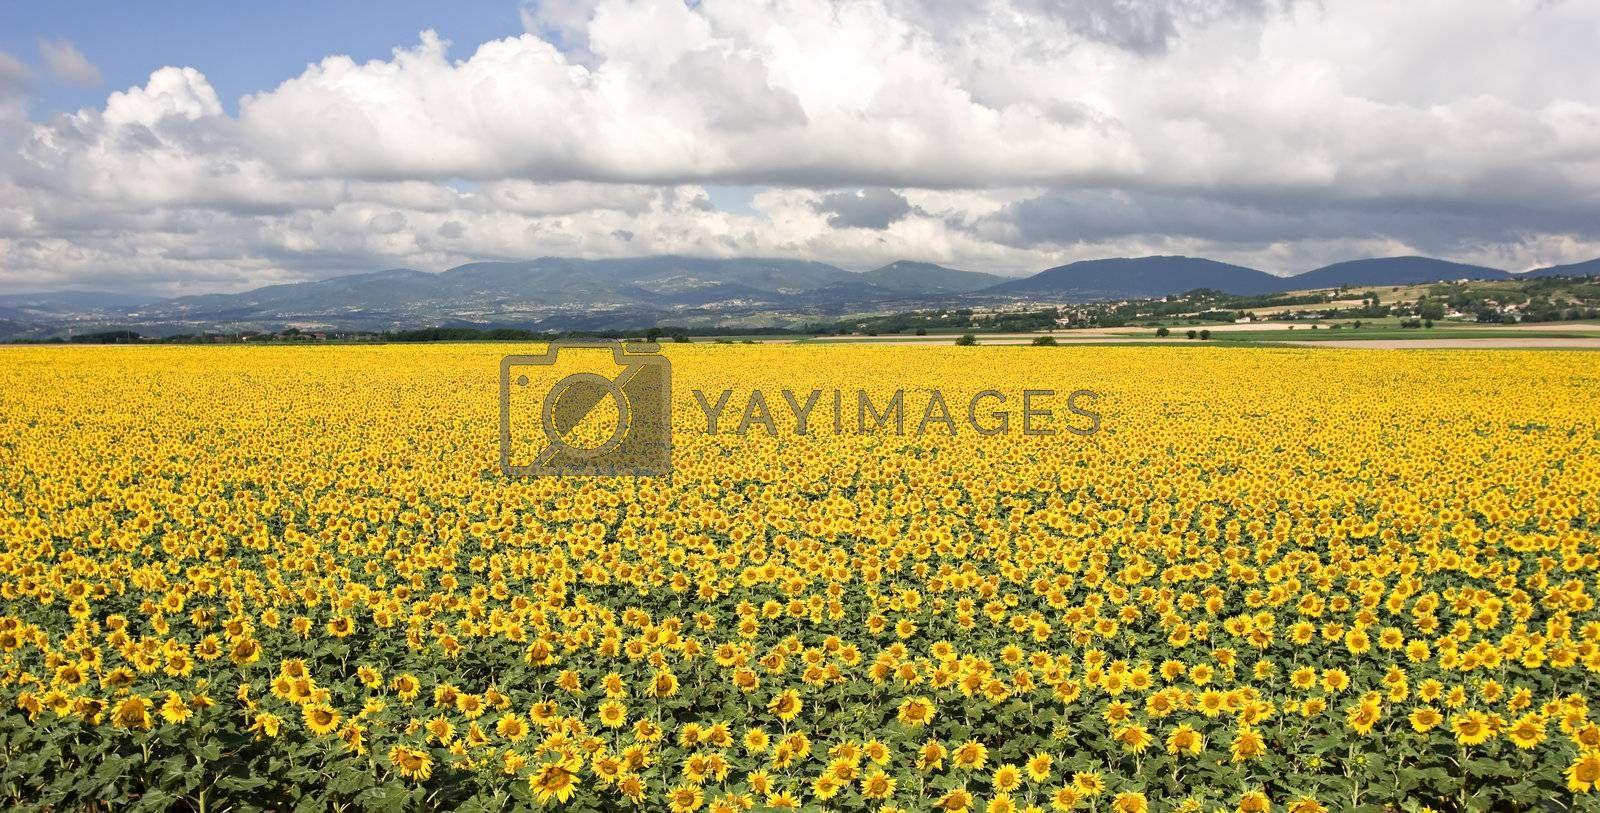 A beautiful field of sunflowers, in the south of France.